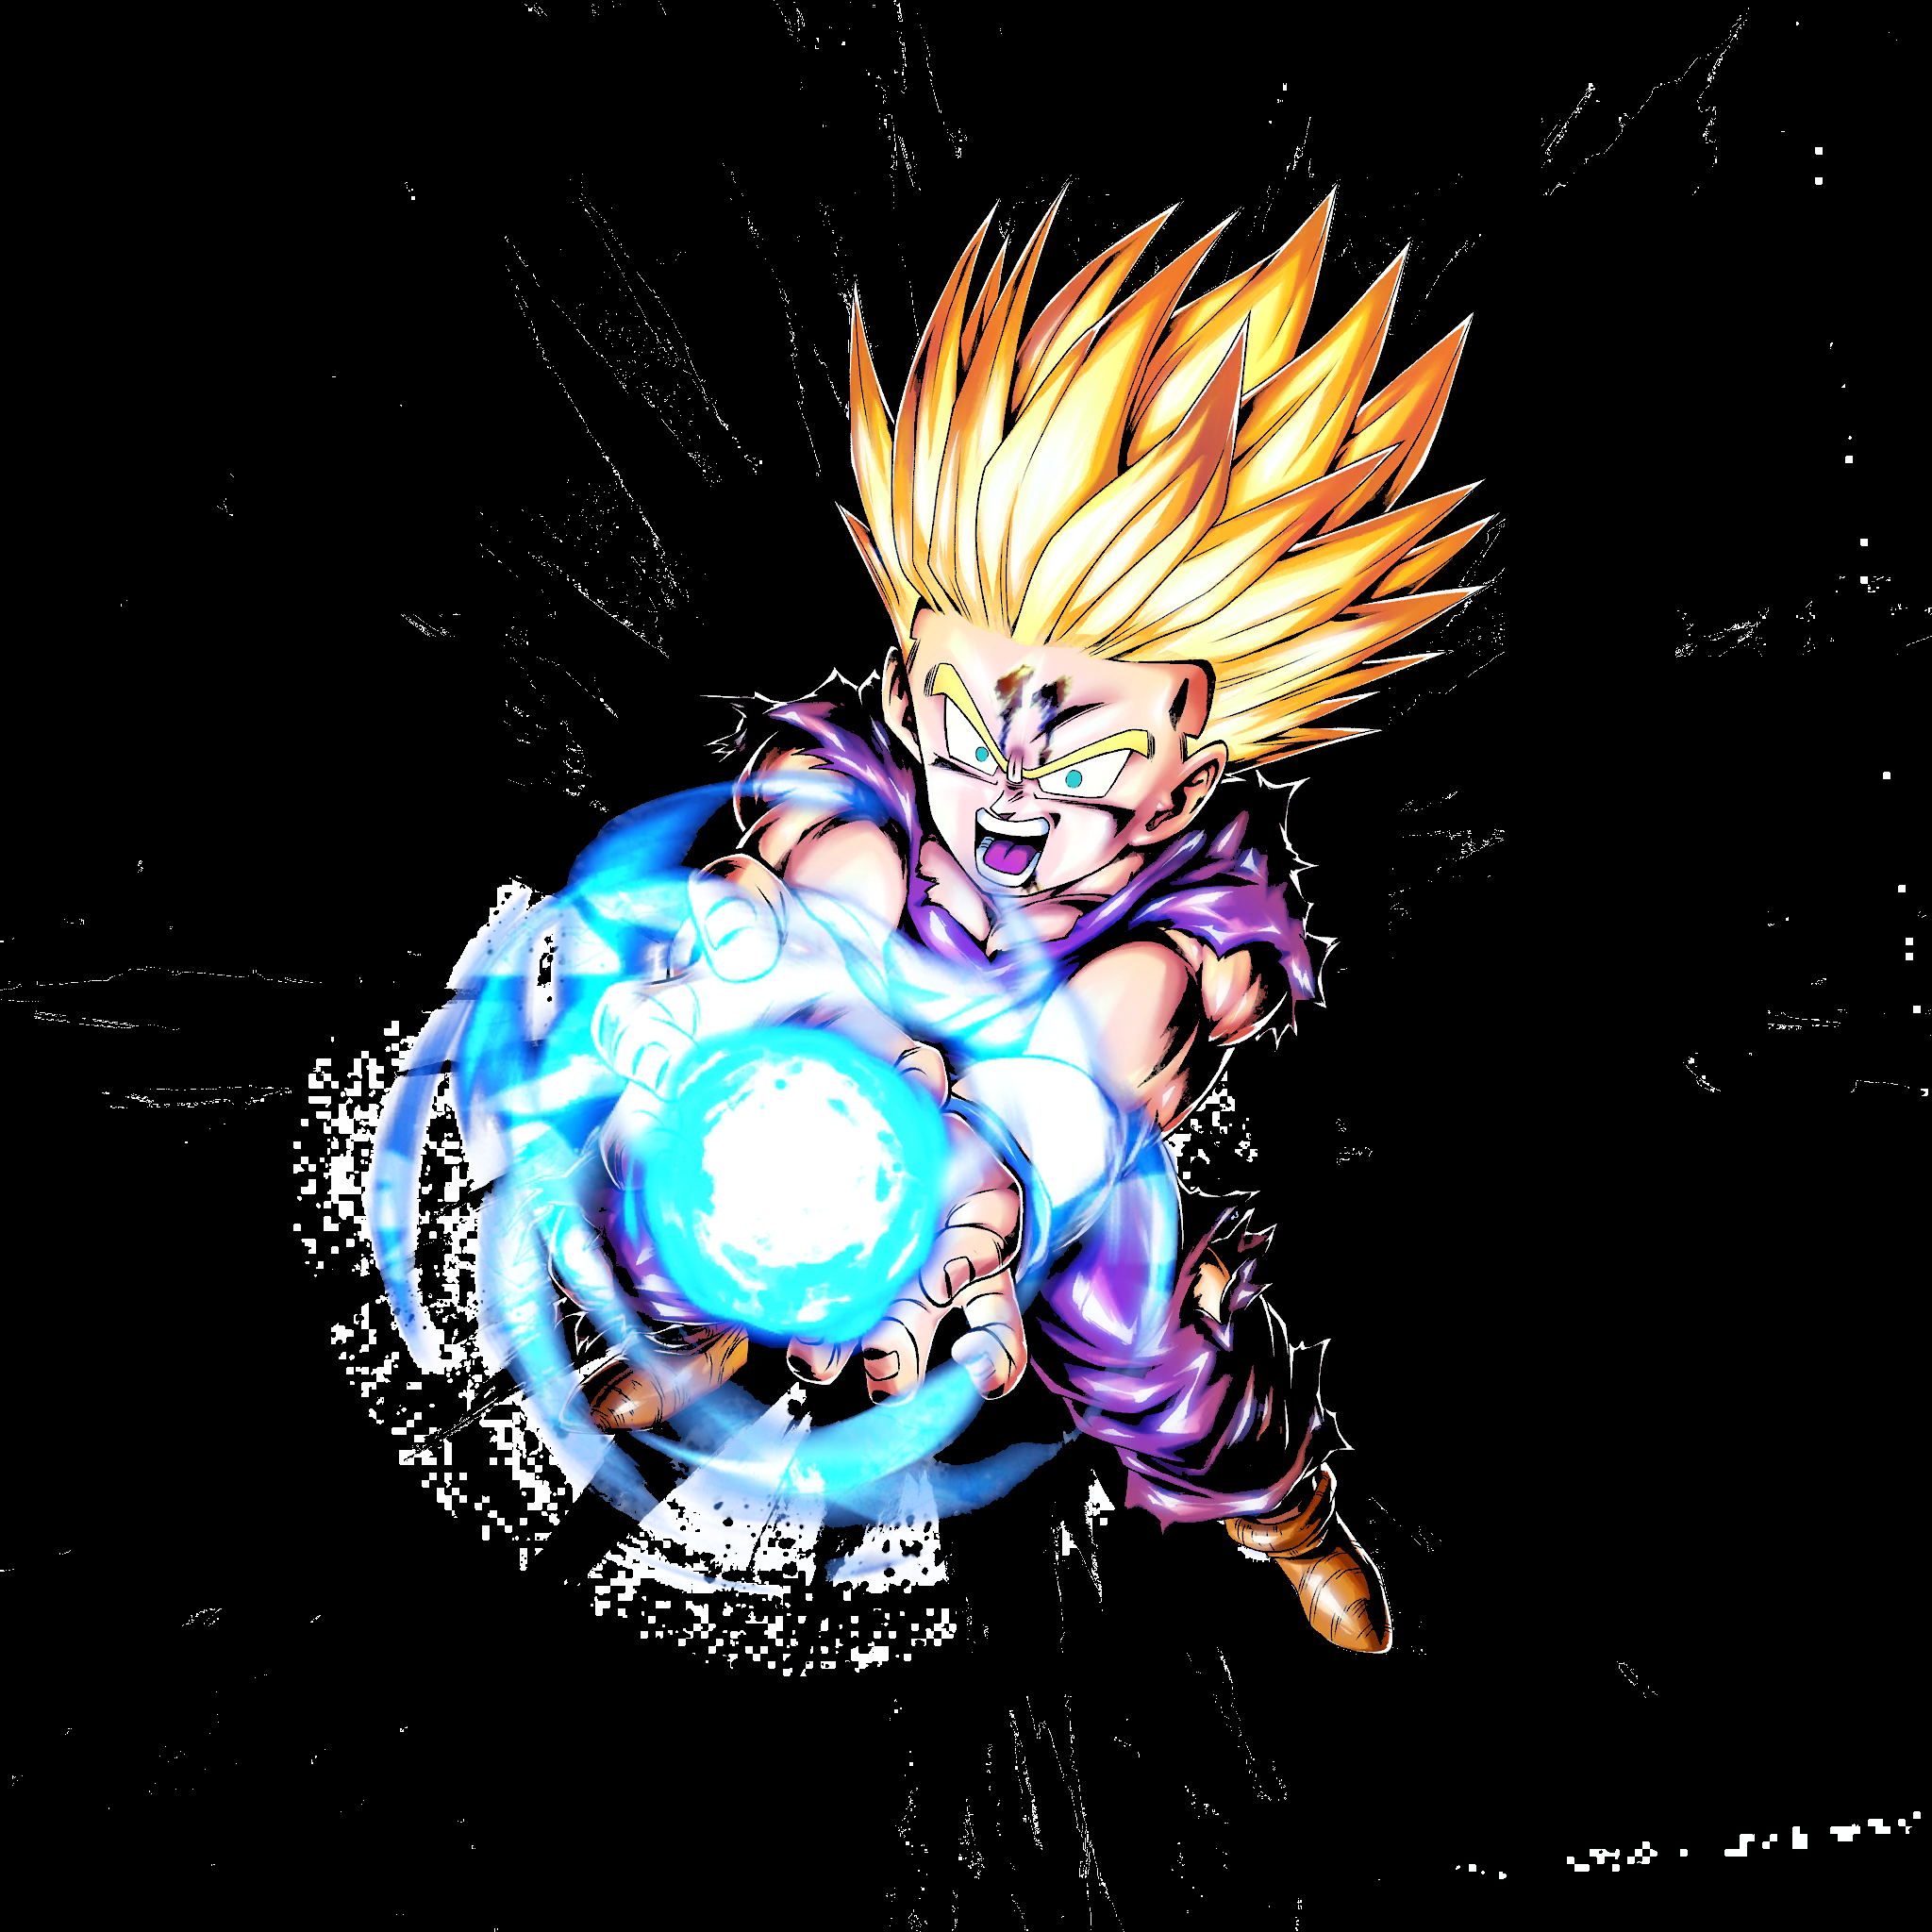 Gohan Ssj2 Wallpapers Top Free Gohan Ssj2 Backgrounds